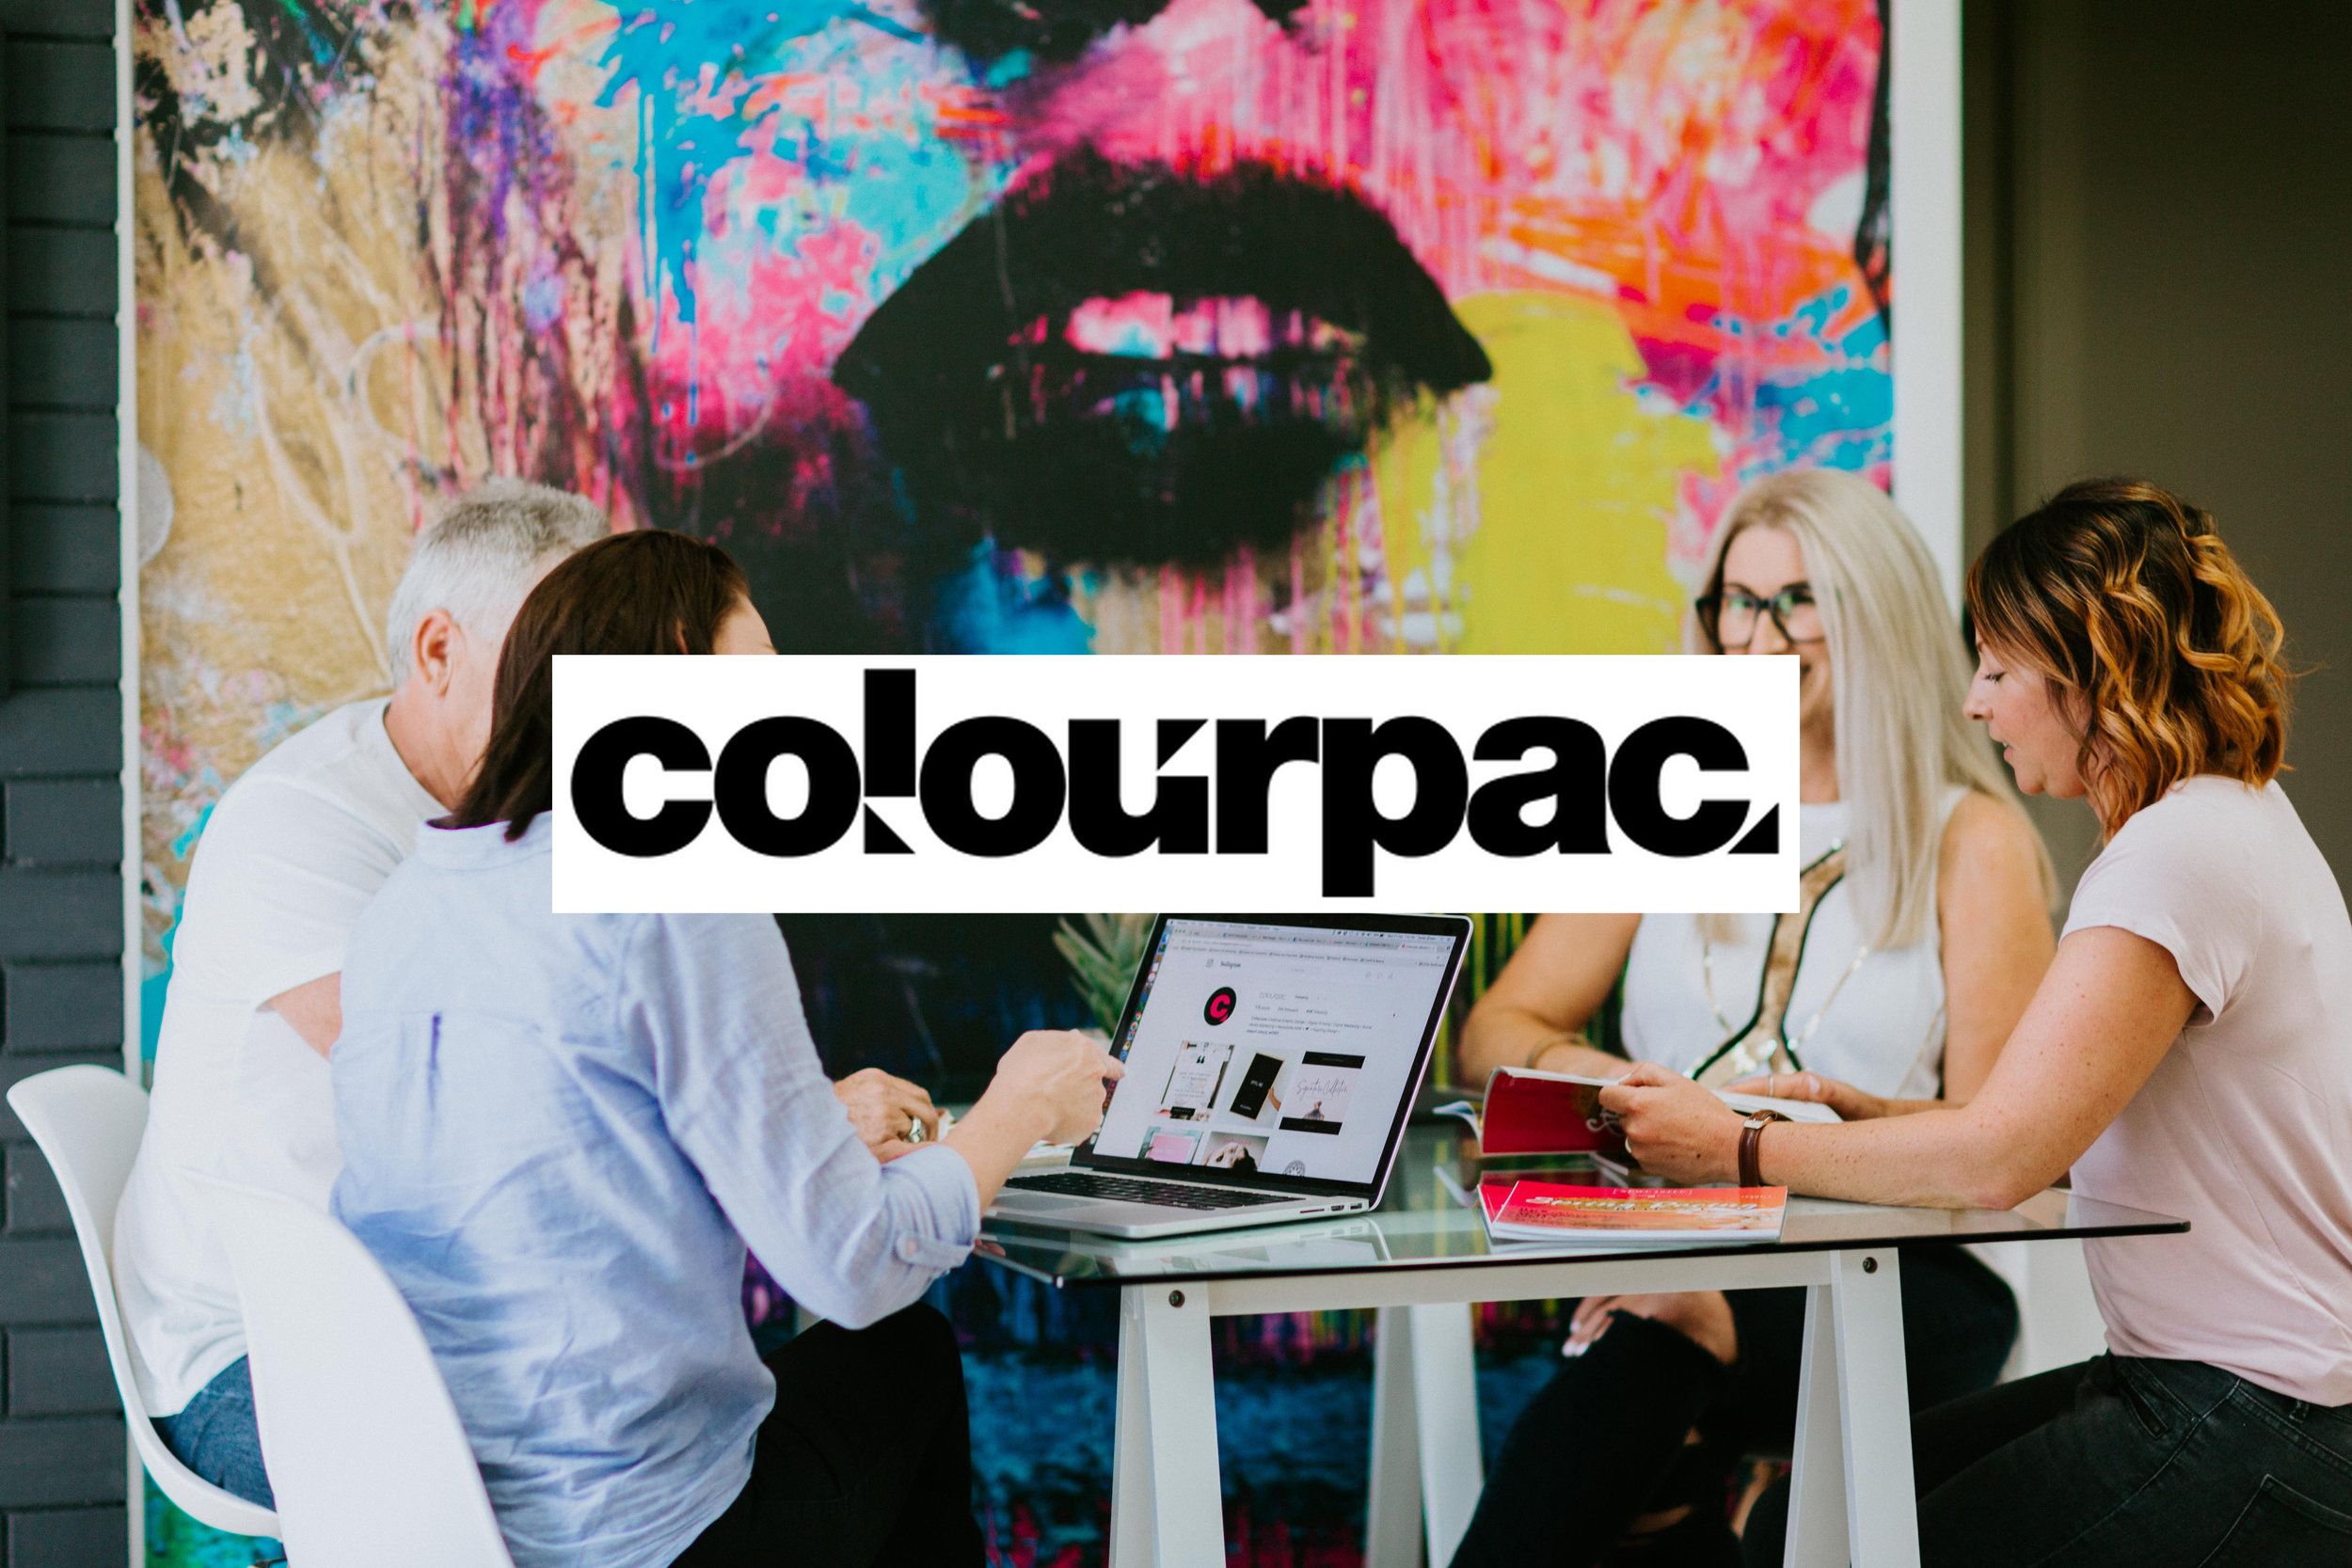 Colourpac - Commercial Shoot - Finals-5.jpg